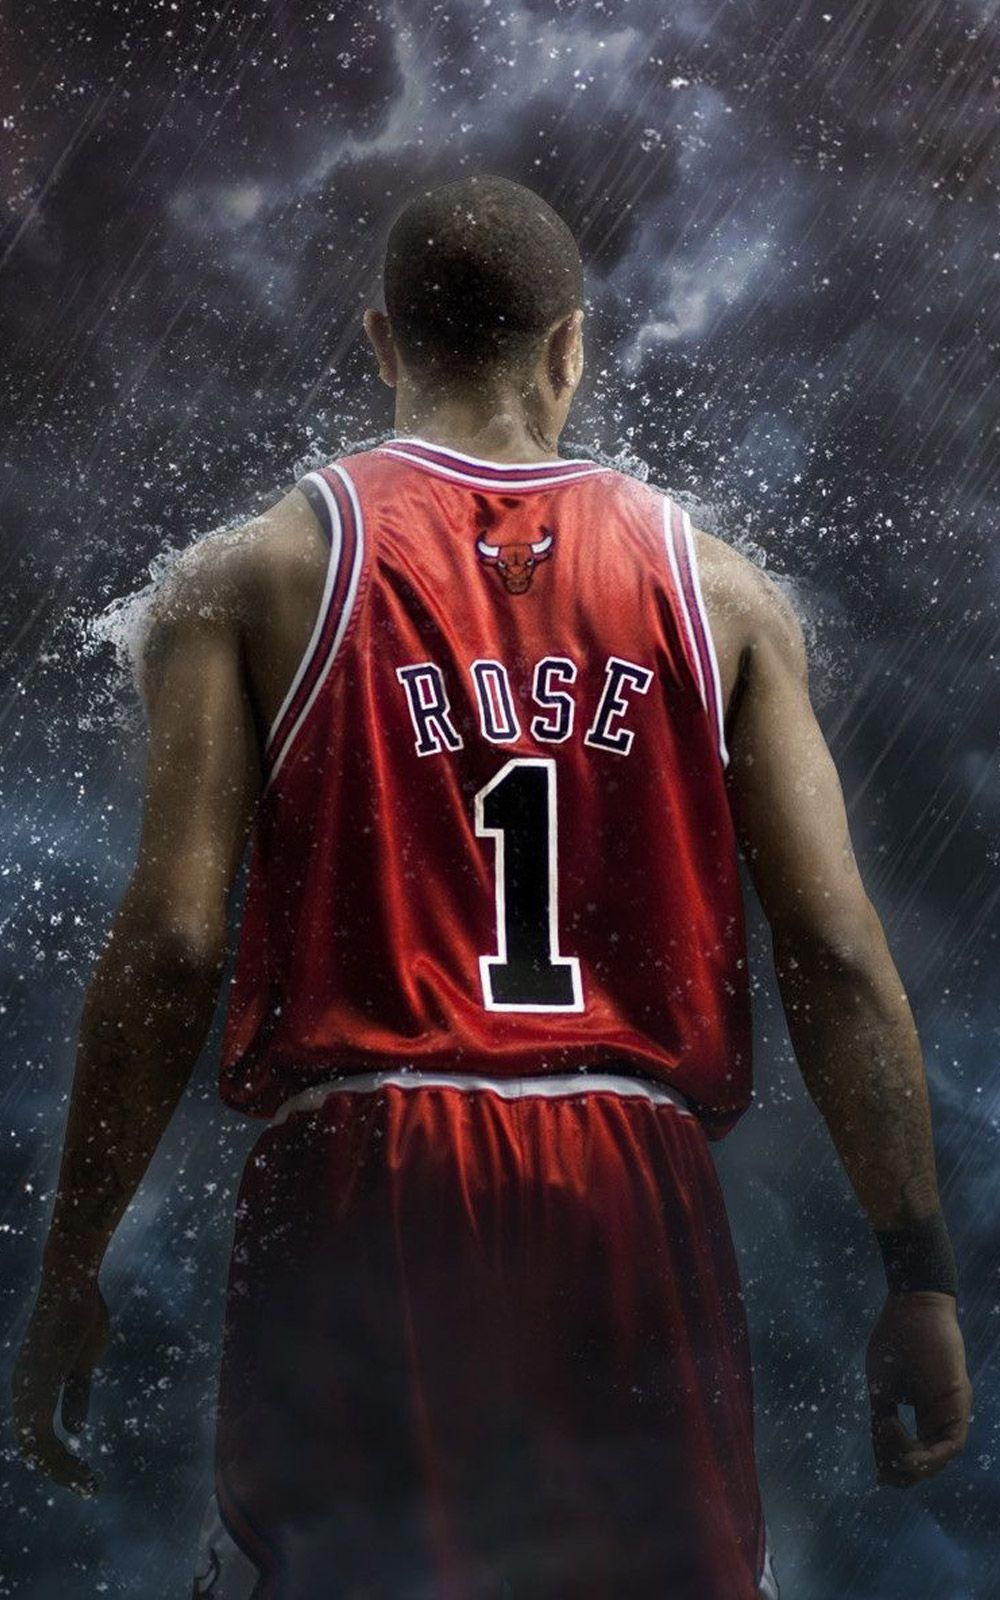 Pin by Anthony Garcia on Nba stars | Nba wallpapers, Bulls wallpaper, Derrick rose